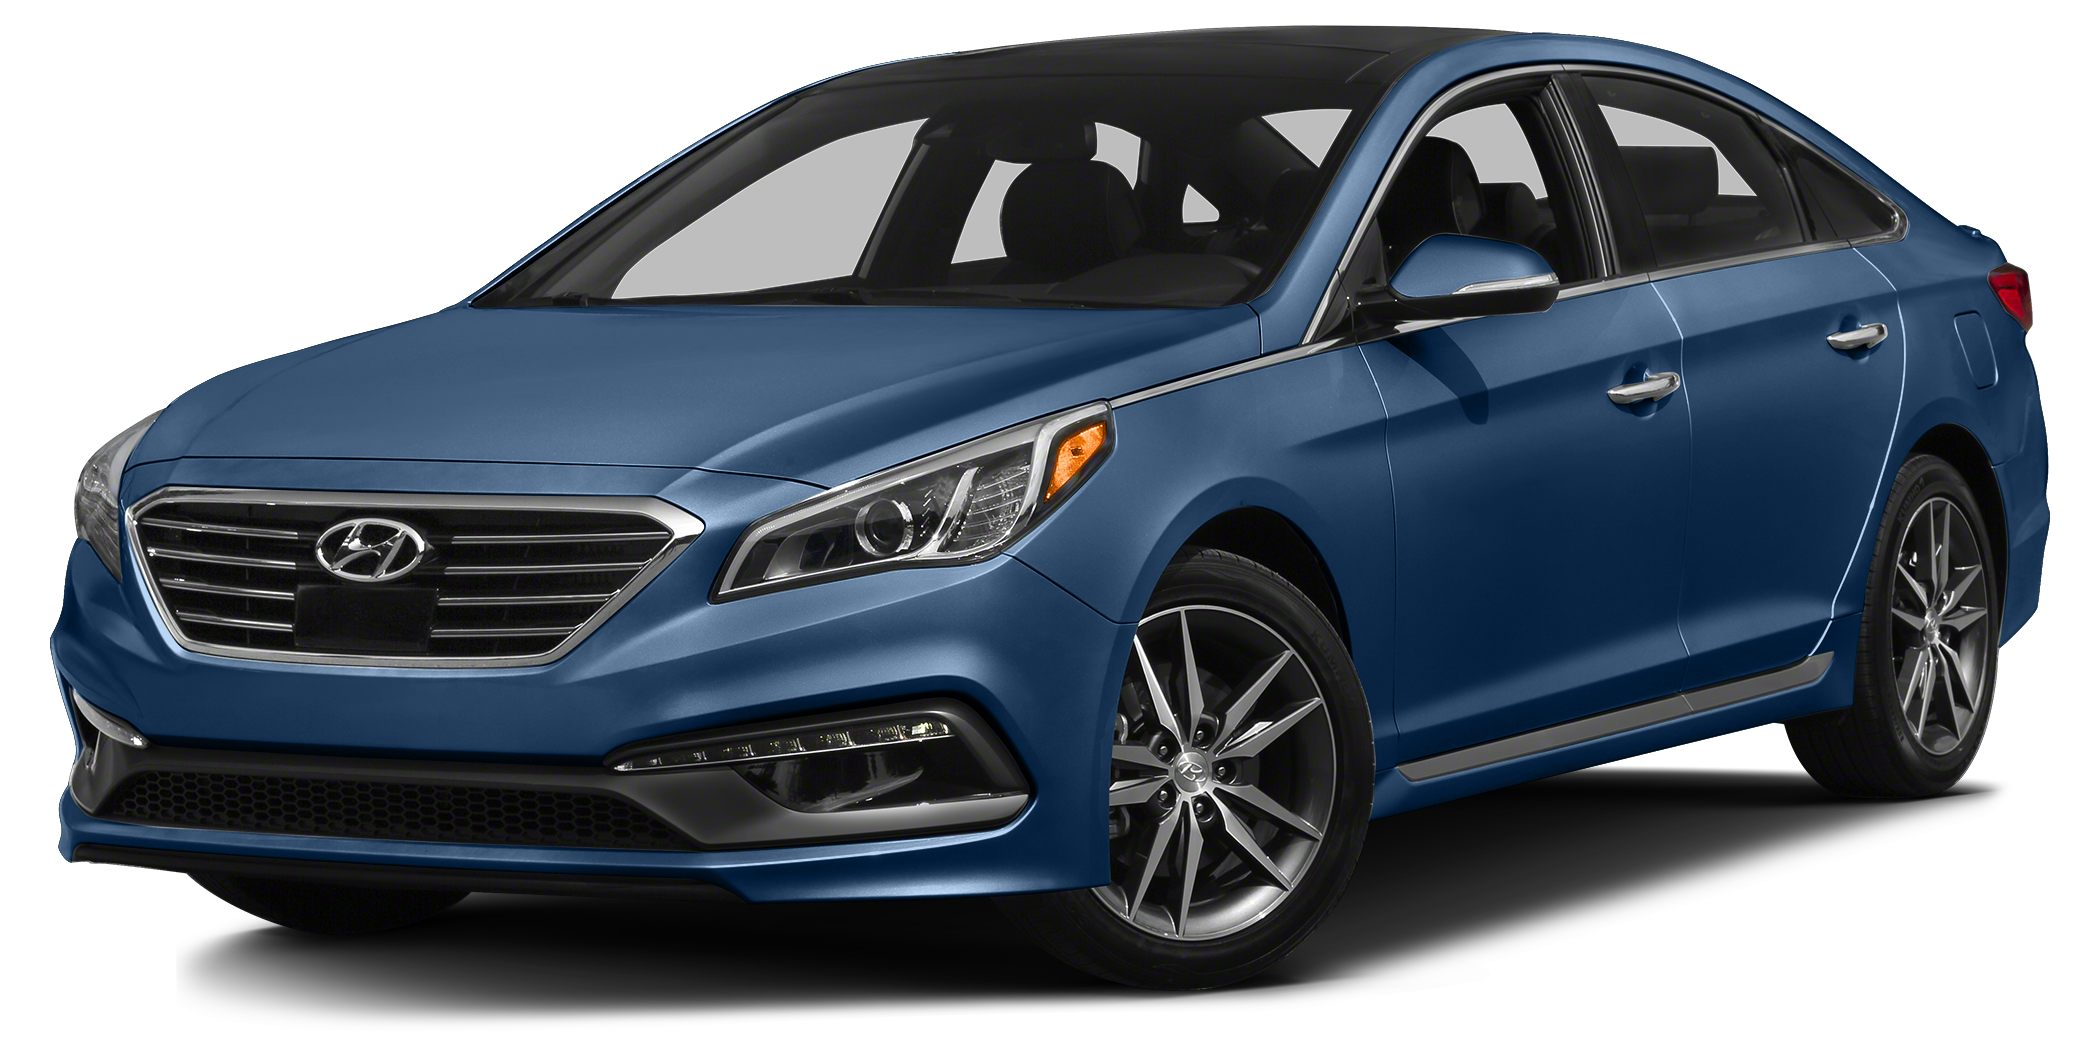 2015 Hyundai Sonata SE 2015 Hyundai Sonata SE in Nouveau Blue Bluetooth for Phone and Audio Strea